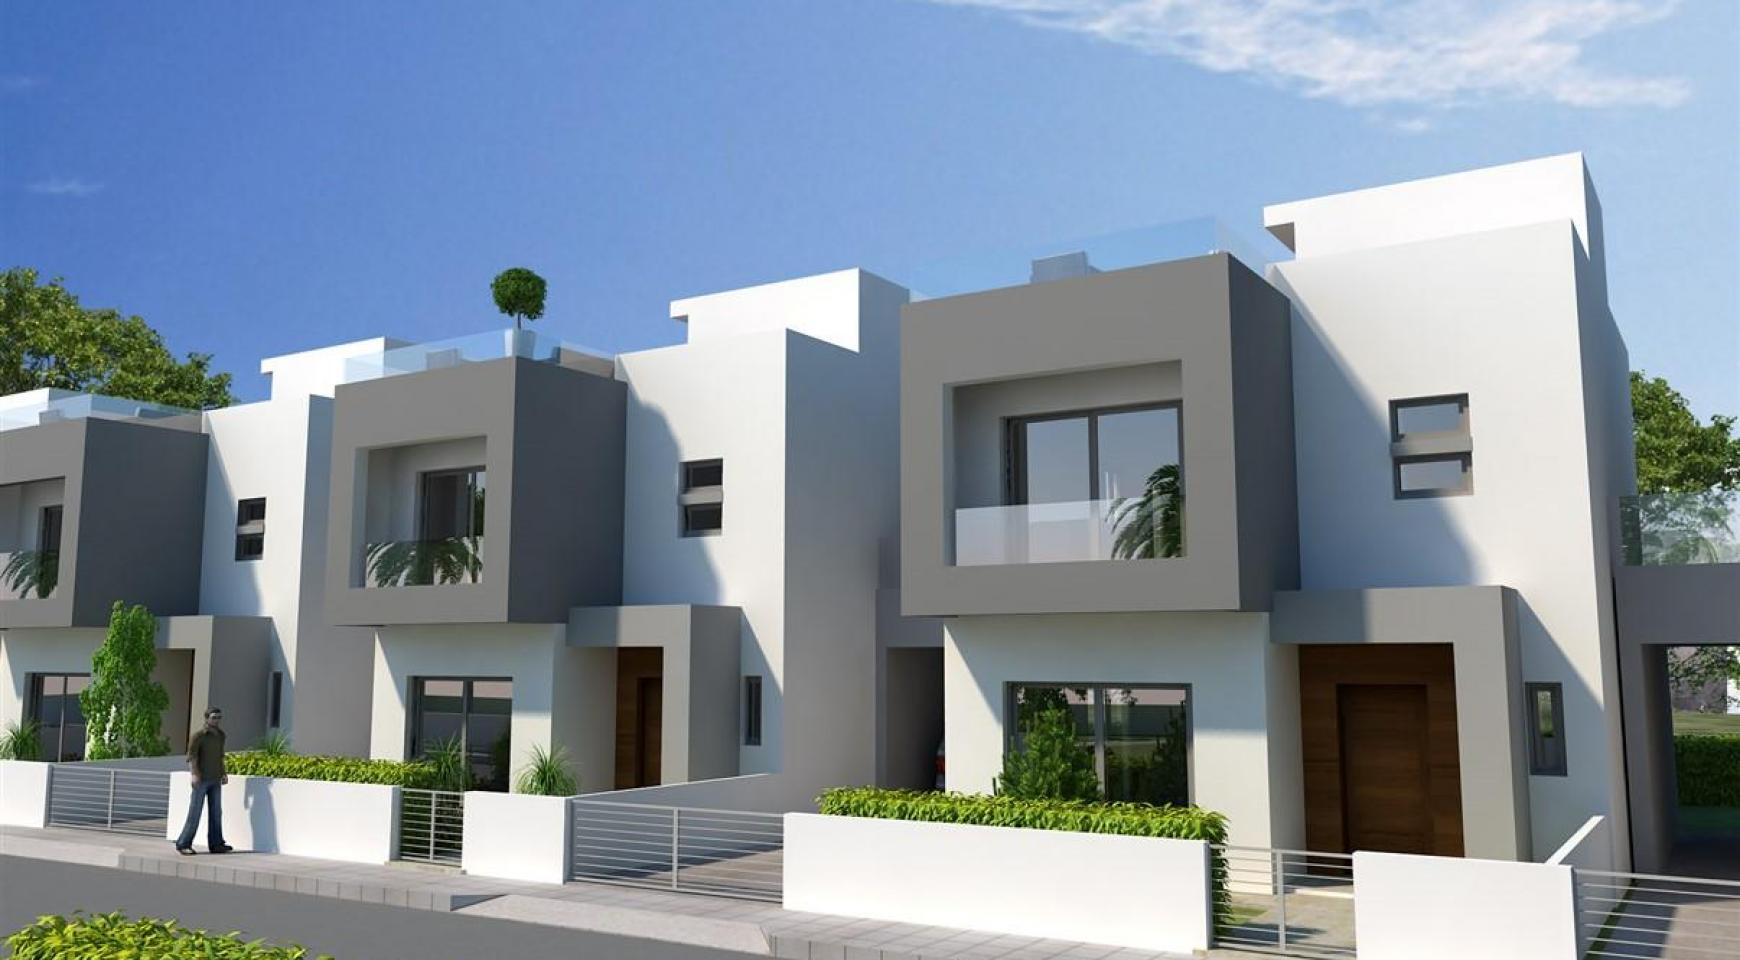 3 Bedroom Villa within a New Project - 1